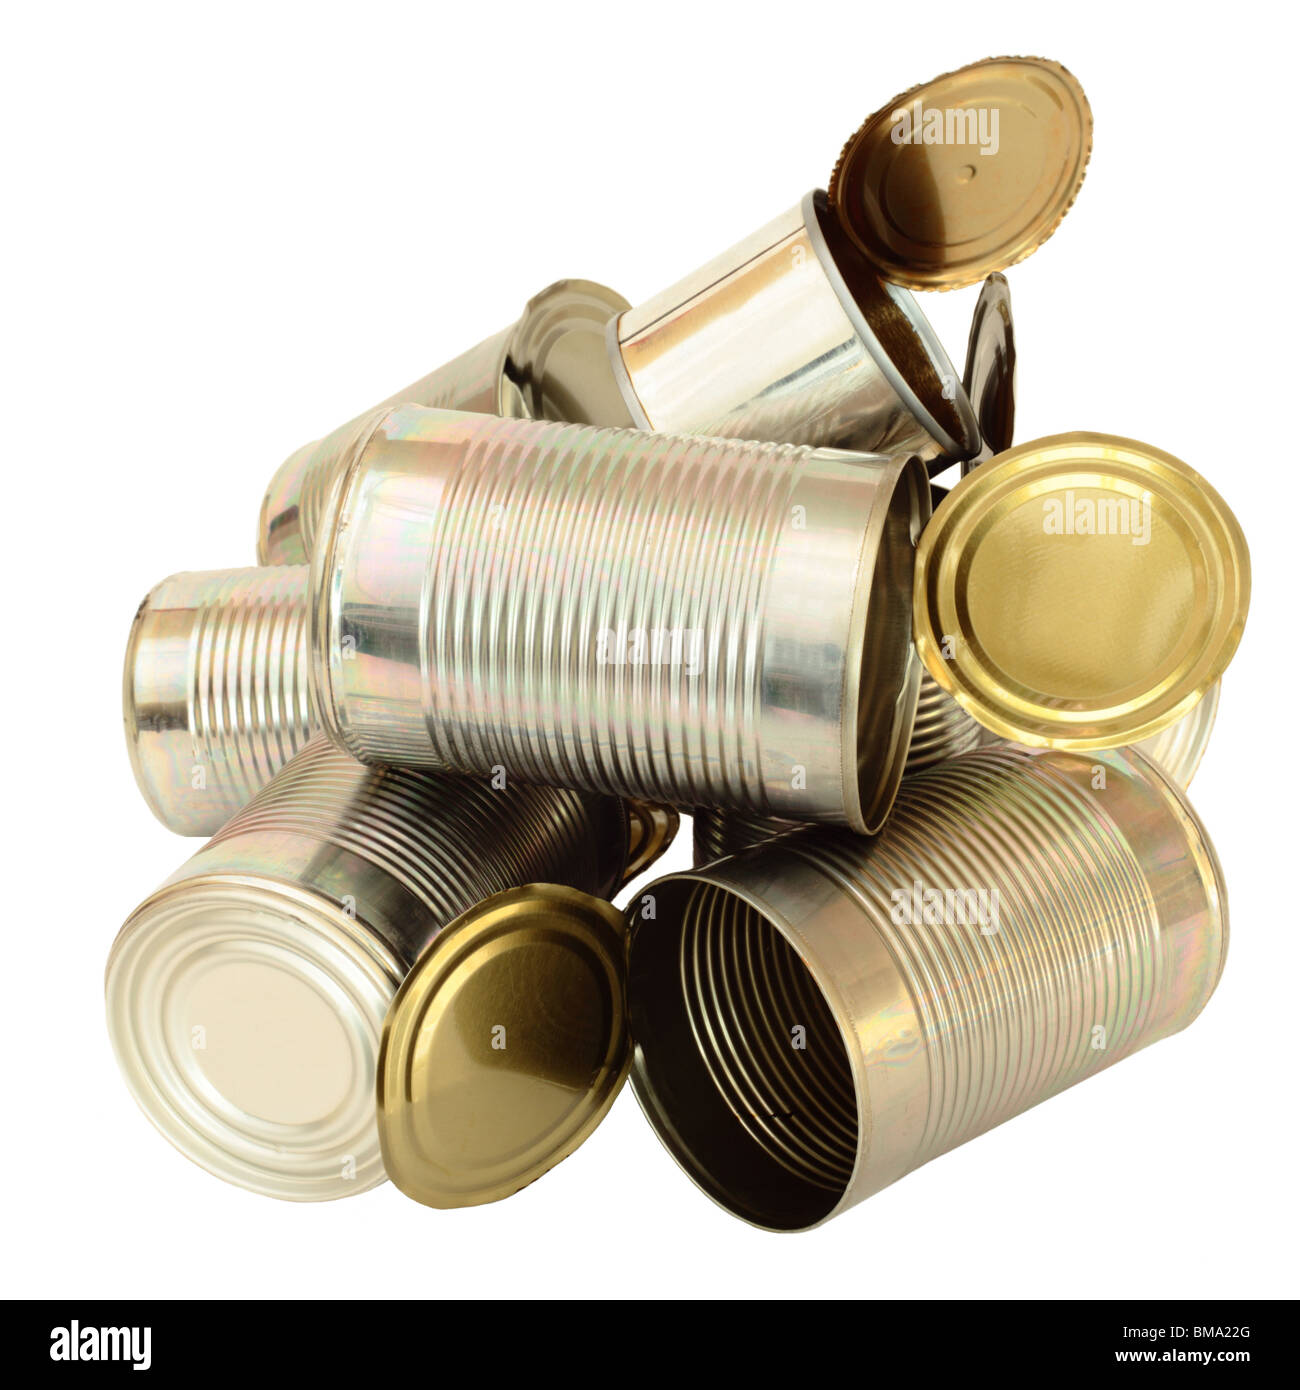 Empty tin cans in a still life arrangement on white background - Stock Image